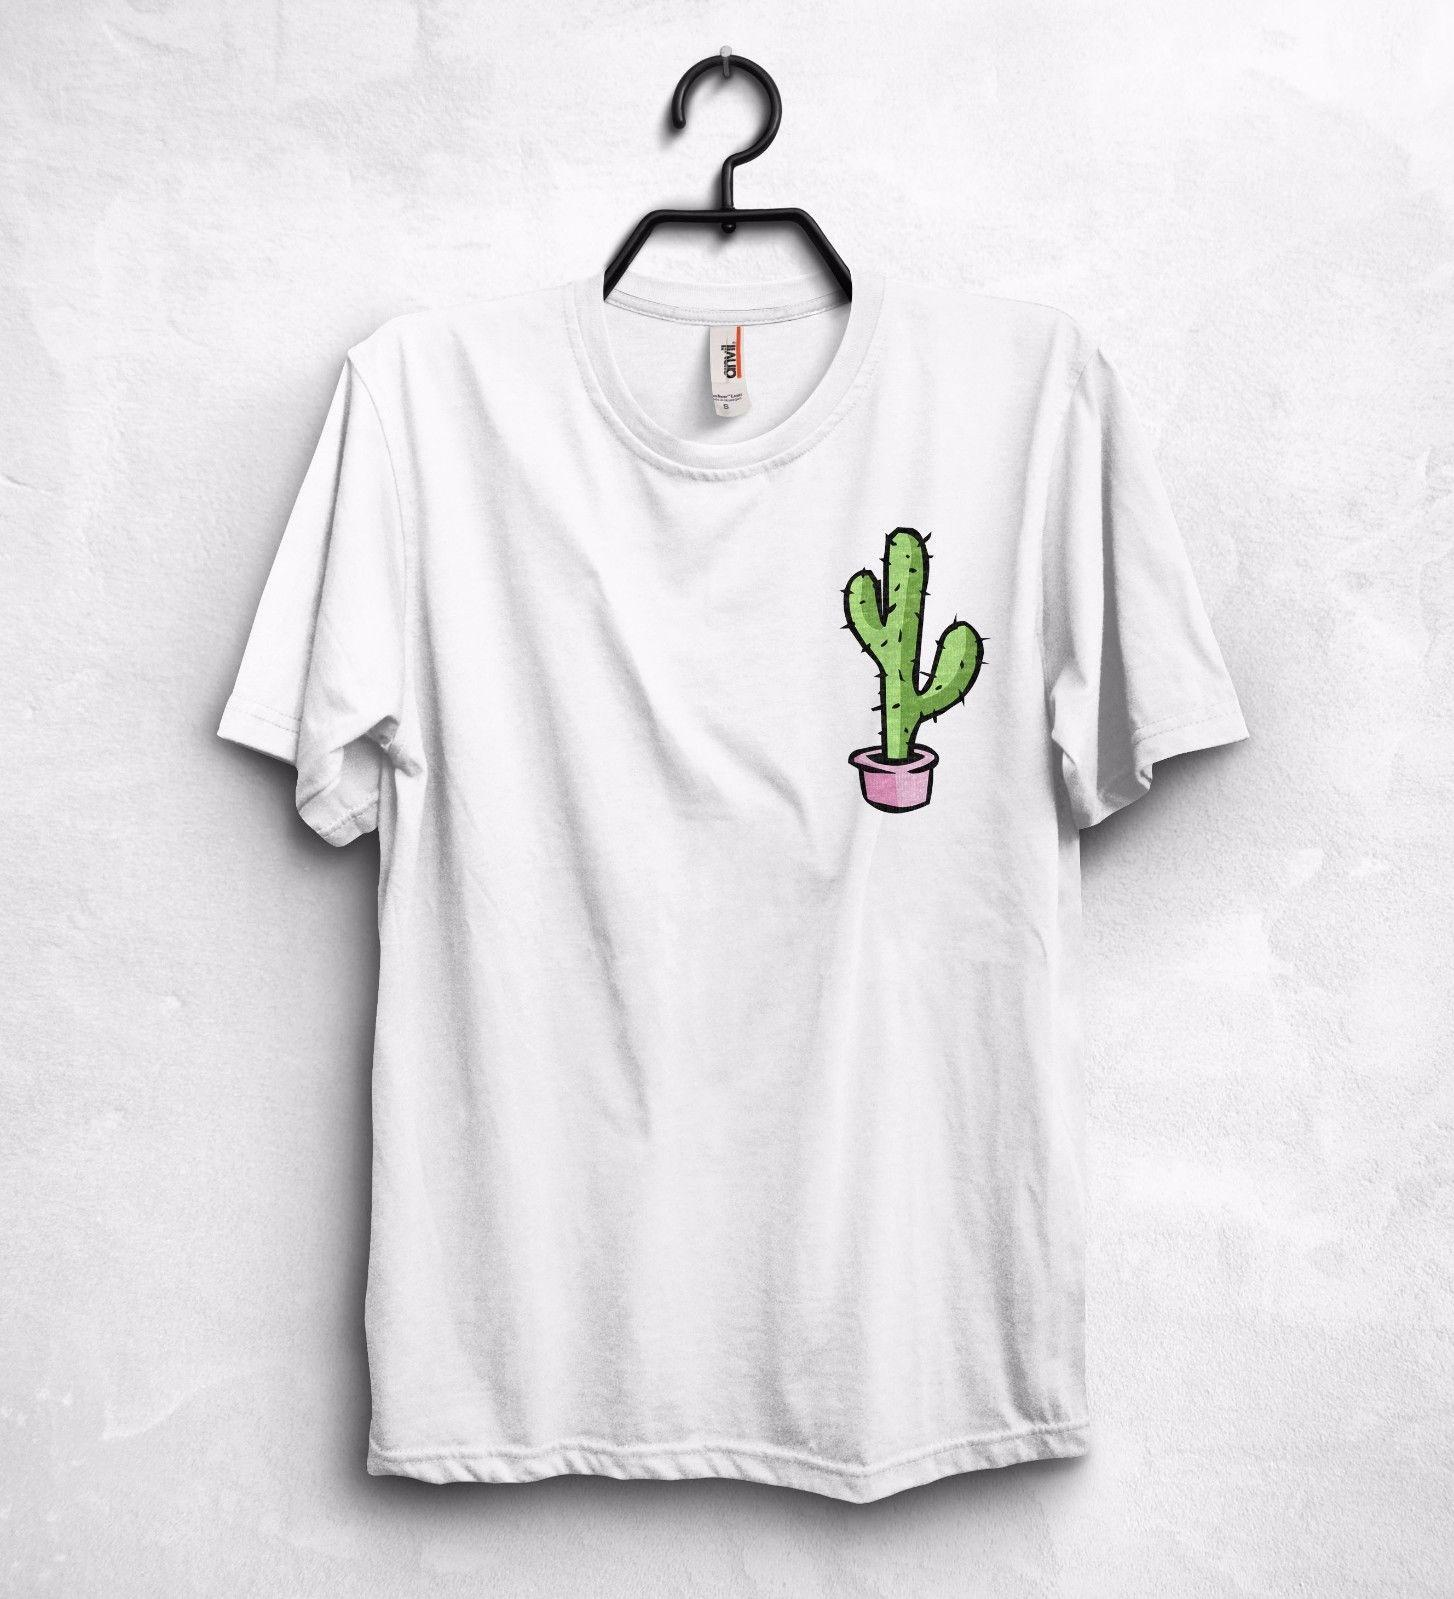 056f3d6637f Cactus Logo T Shirt Top Tumblr Fashion Plants Vegan Cute Insta Instagram  Gift Offensive Shirts Ringer T Shirts From Clothing deals